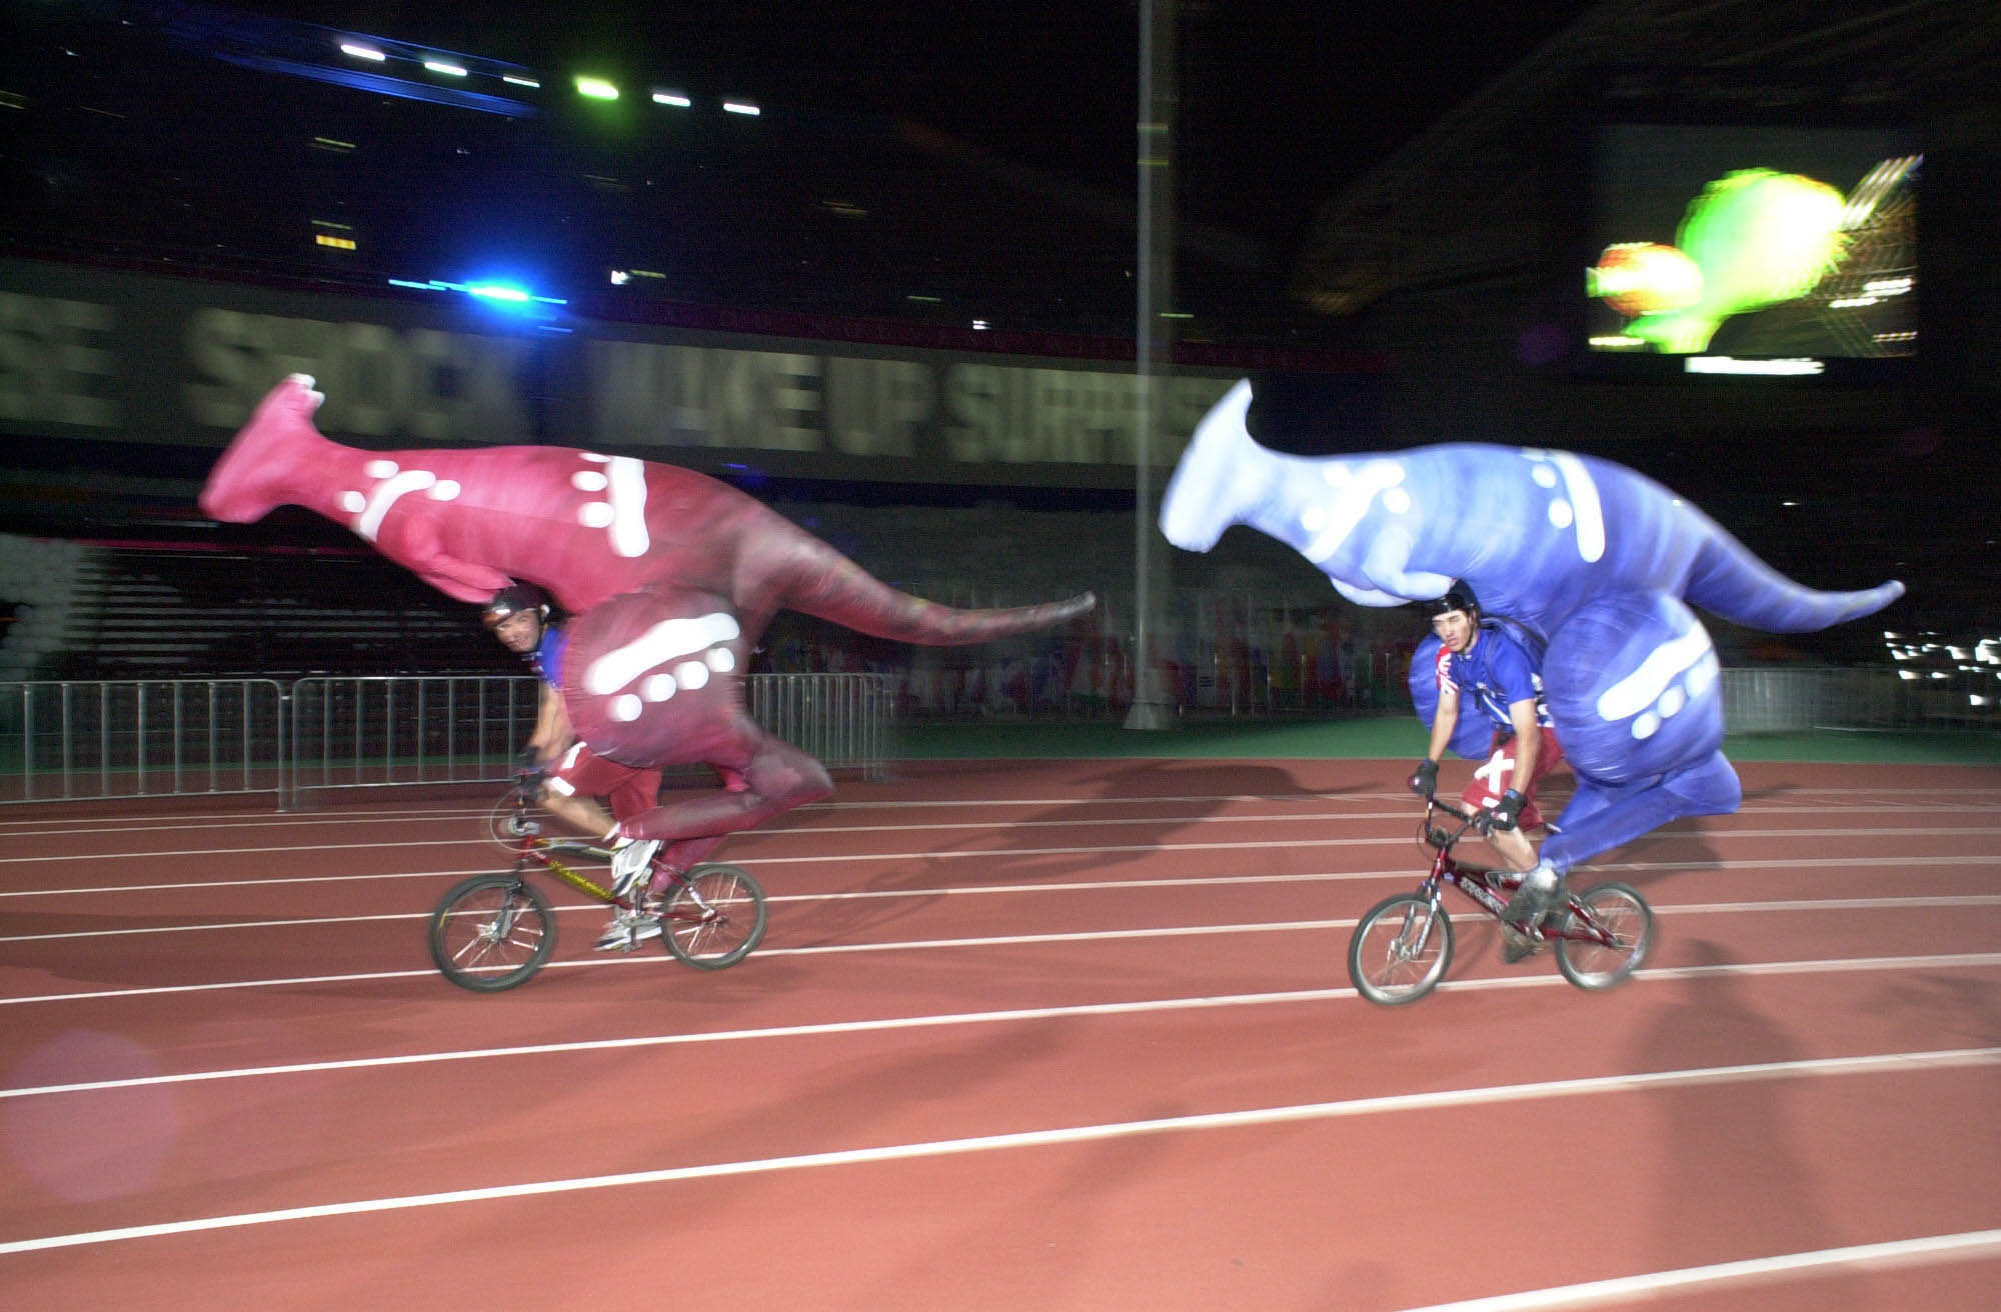 Kangaroos on bicycles formed a memorable part of the Closing Ceremony of Atlanta 1996 ©Wikipedia